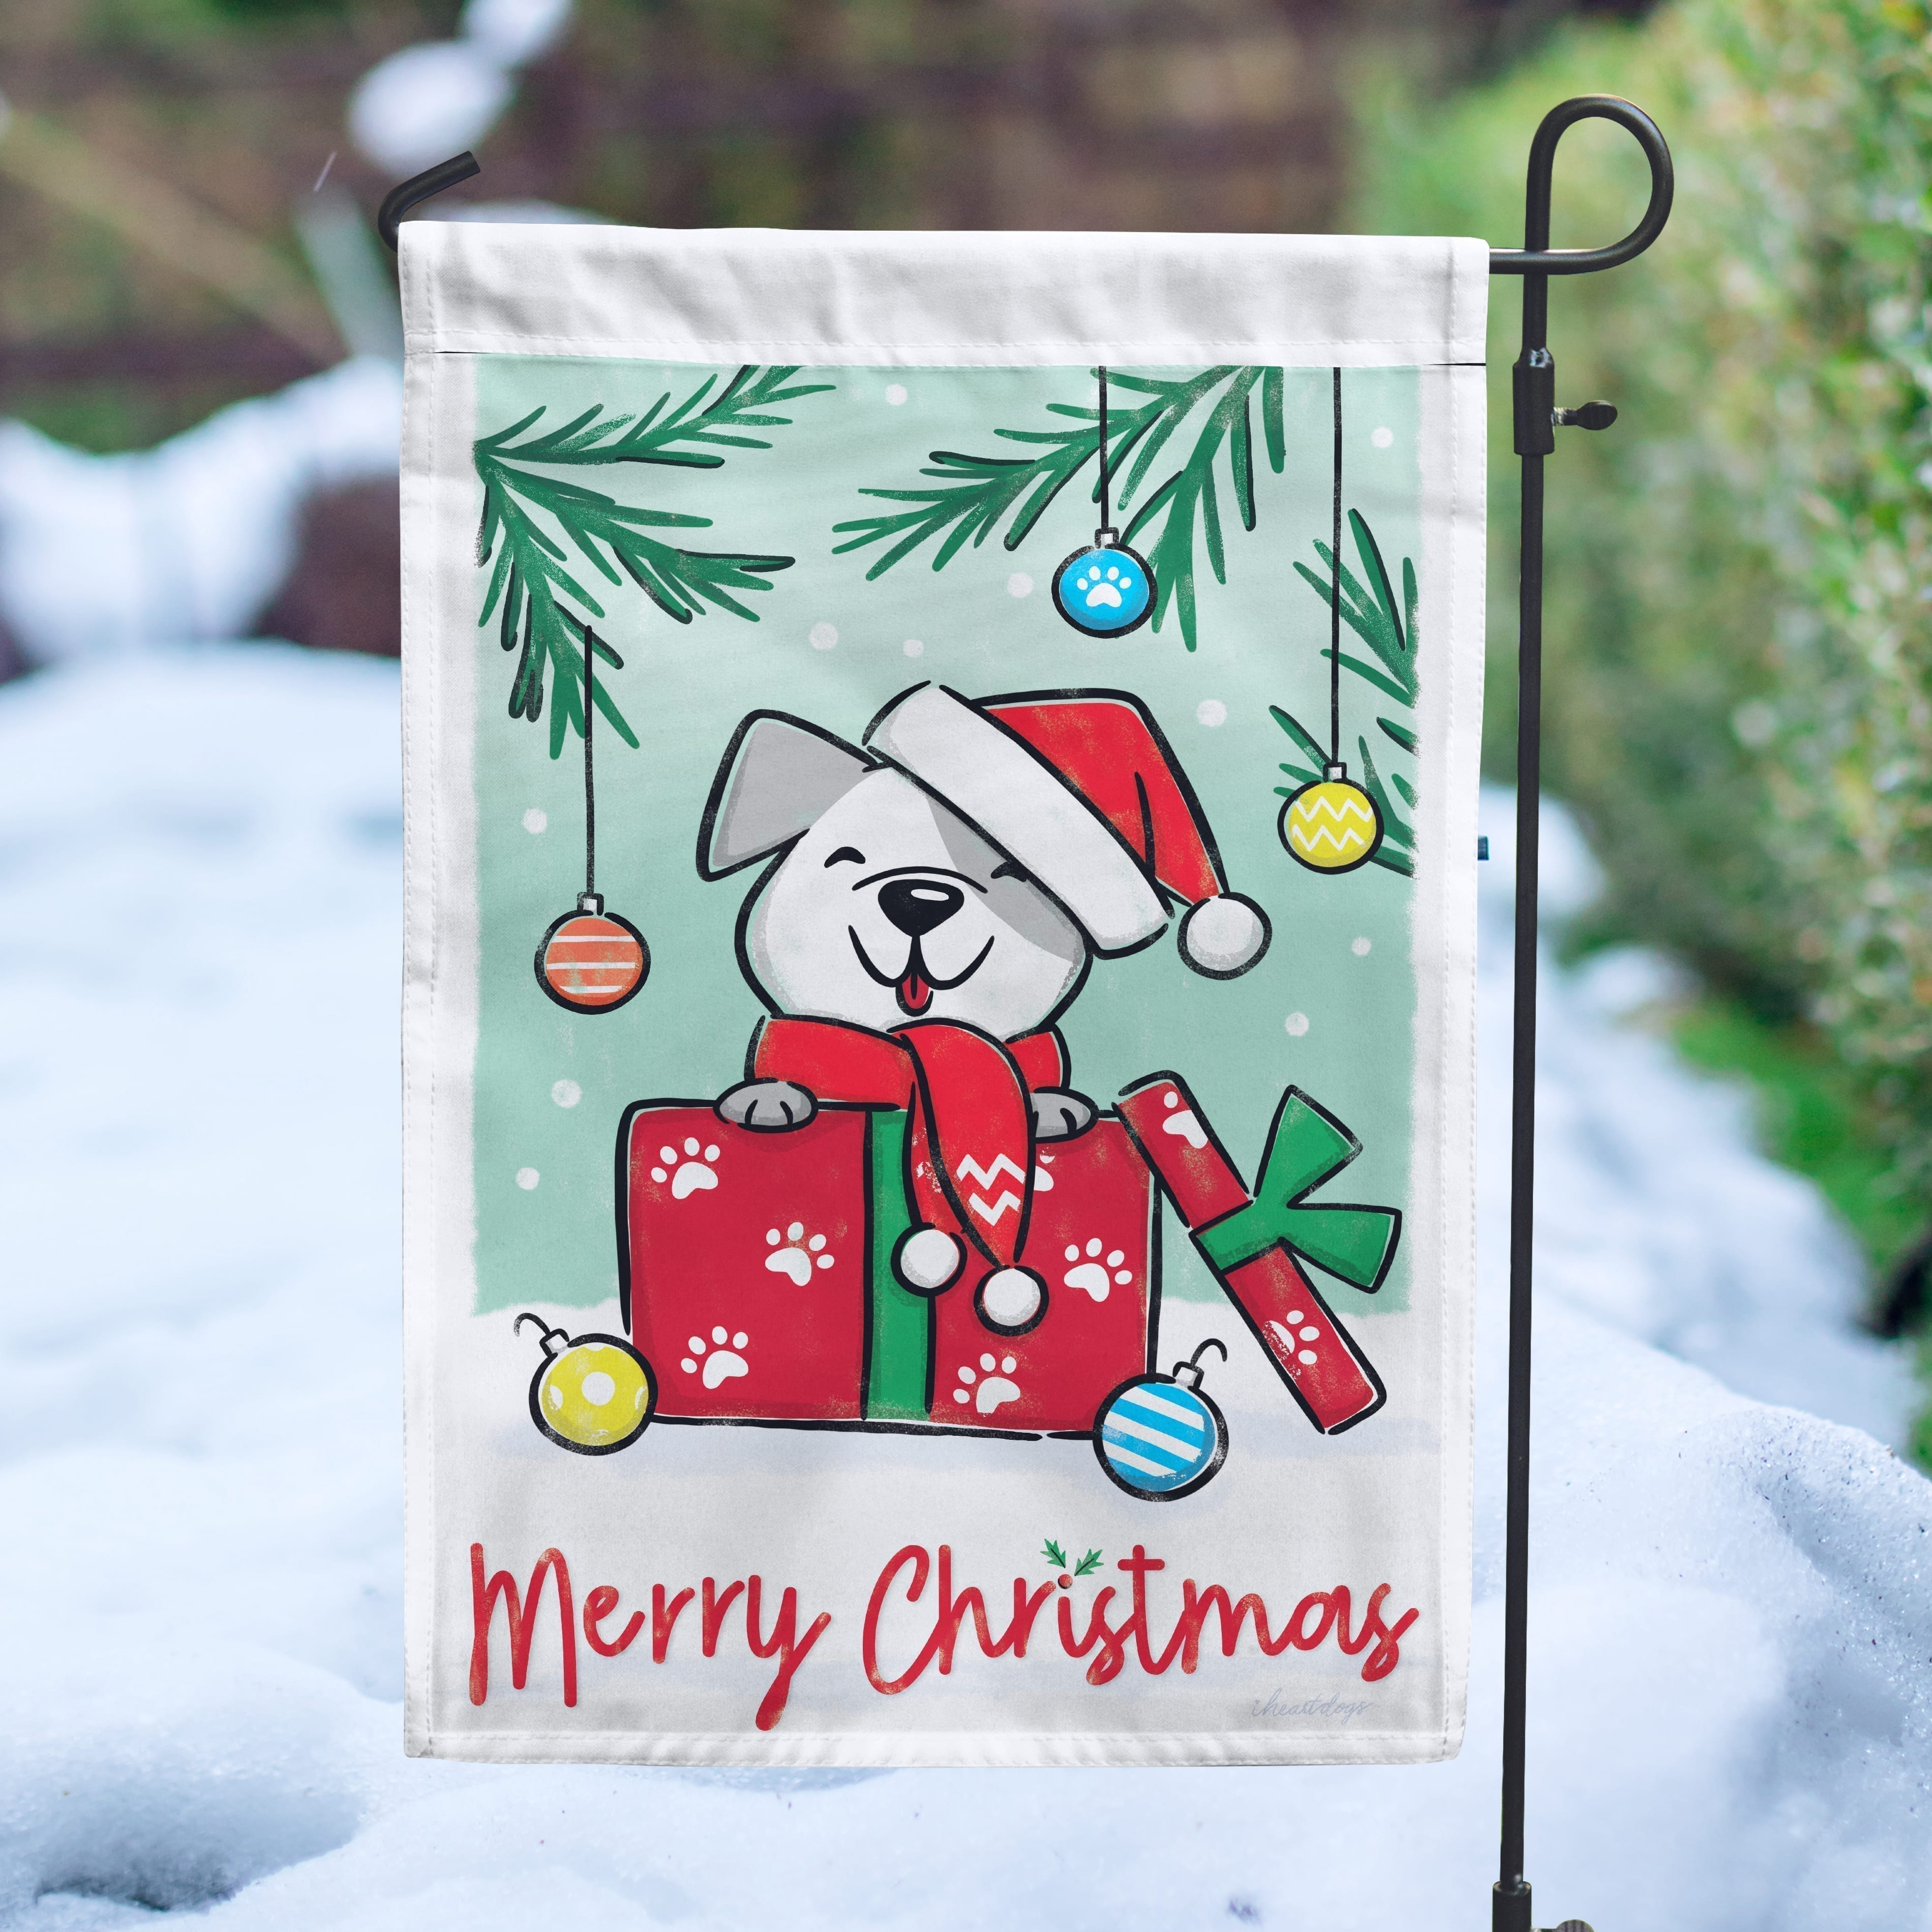 Merry Christmas Pup Garden Flag - Get 2 for $14.99!